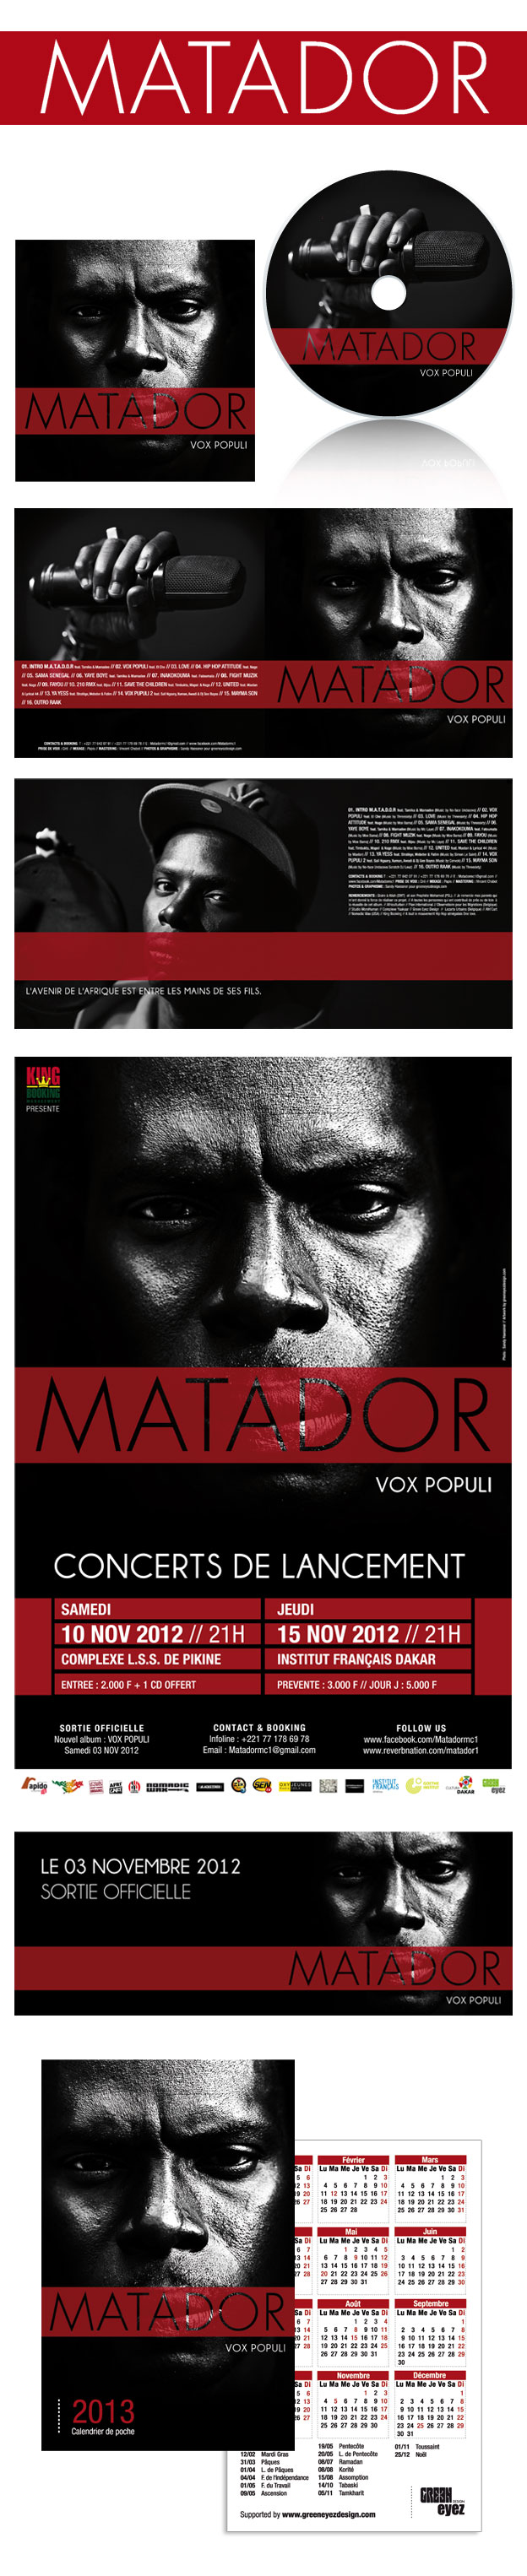 Matador CD Artwork